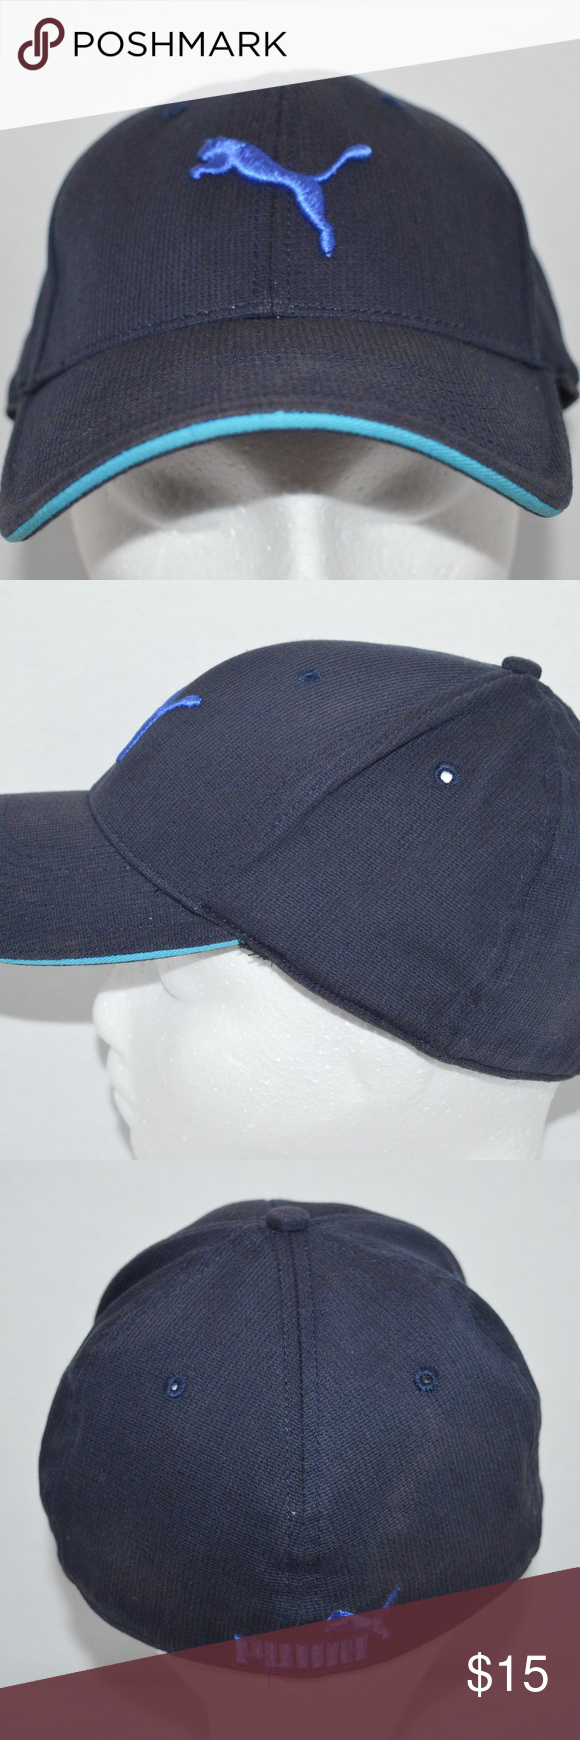 631e62ad571 Puma Navy Fitted L XL Unisex Baseball Golf Hat Raised Embroidery on front  and back